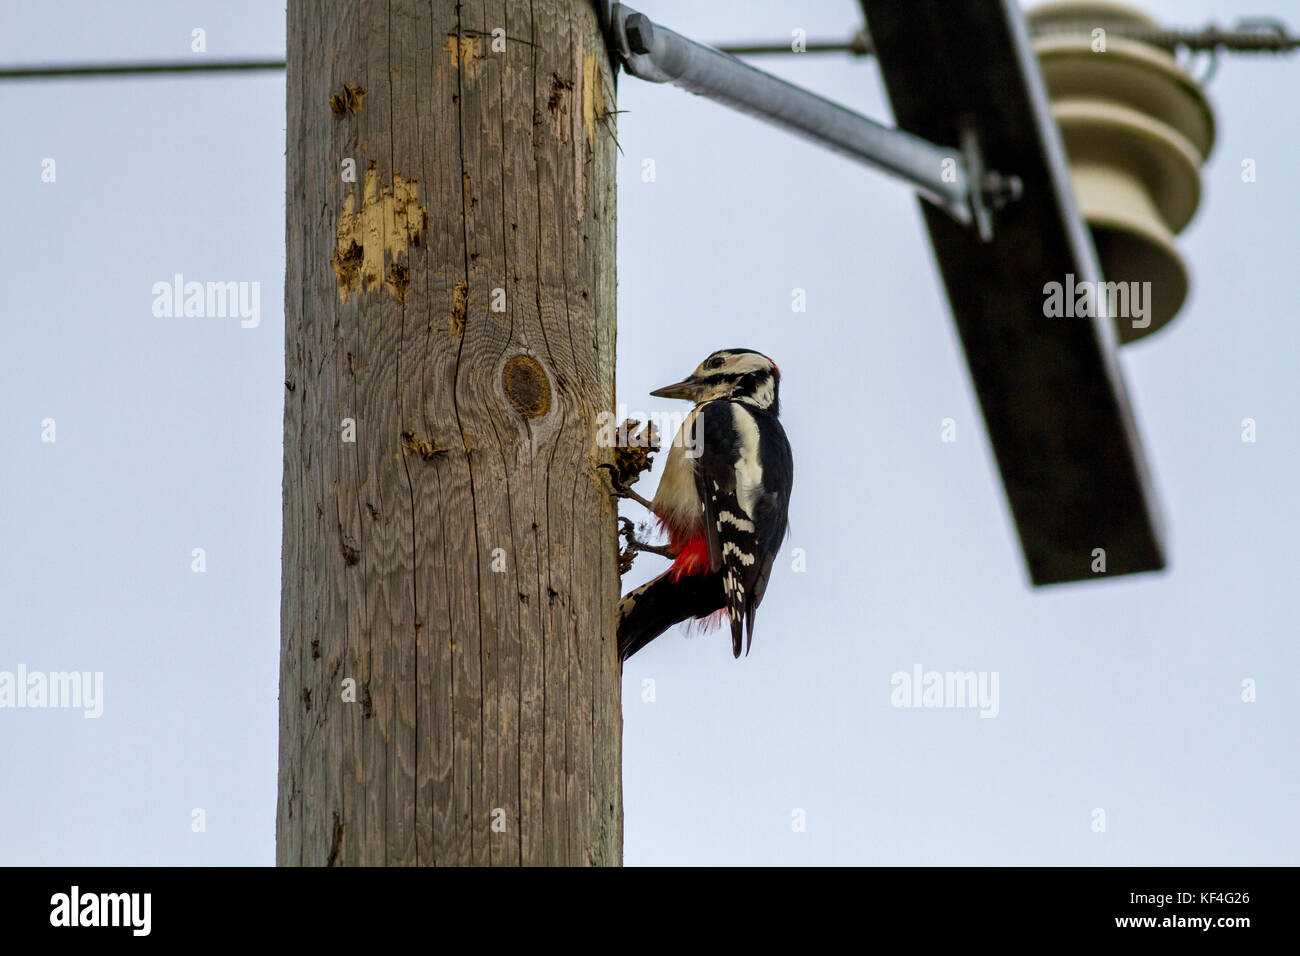 Finnish wildlife: great spotted woodpecker on a telegraph pole pecking a pine cone it has placed in a hole in the - Stock Image